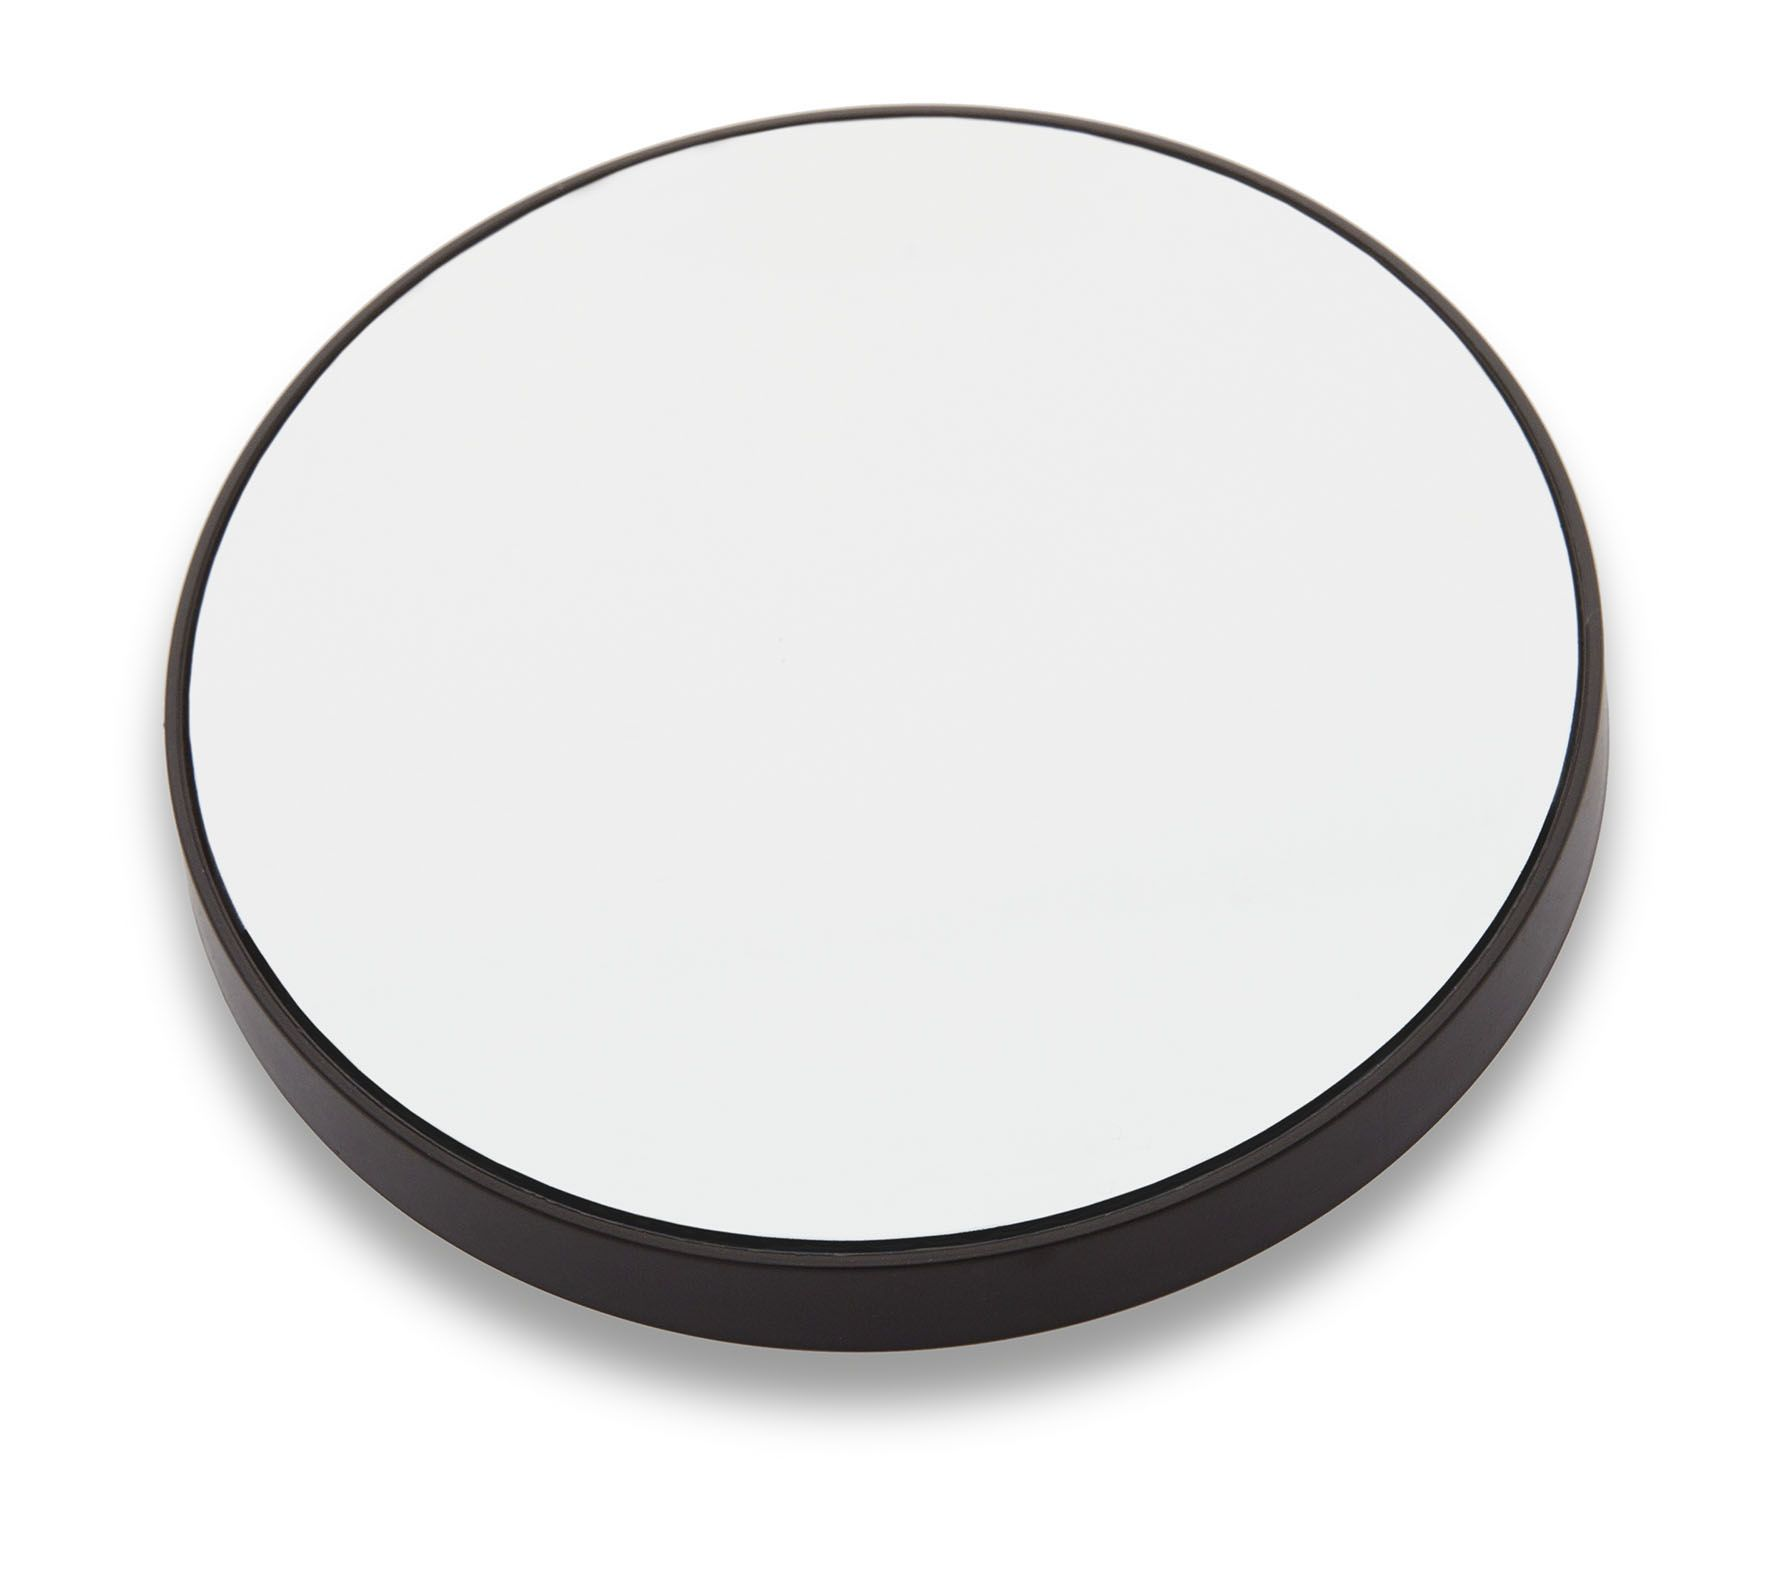 MAGNIFYING SUCTION CUP MIRROR - Ø 9 cm  - 1x10 3C